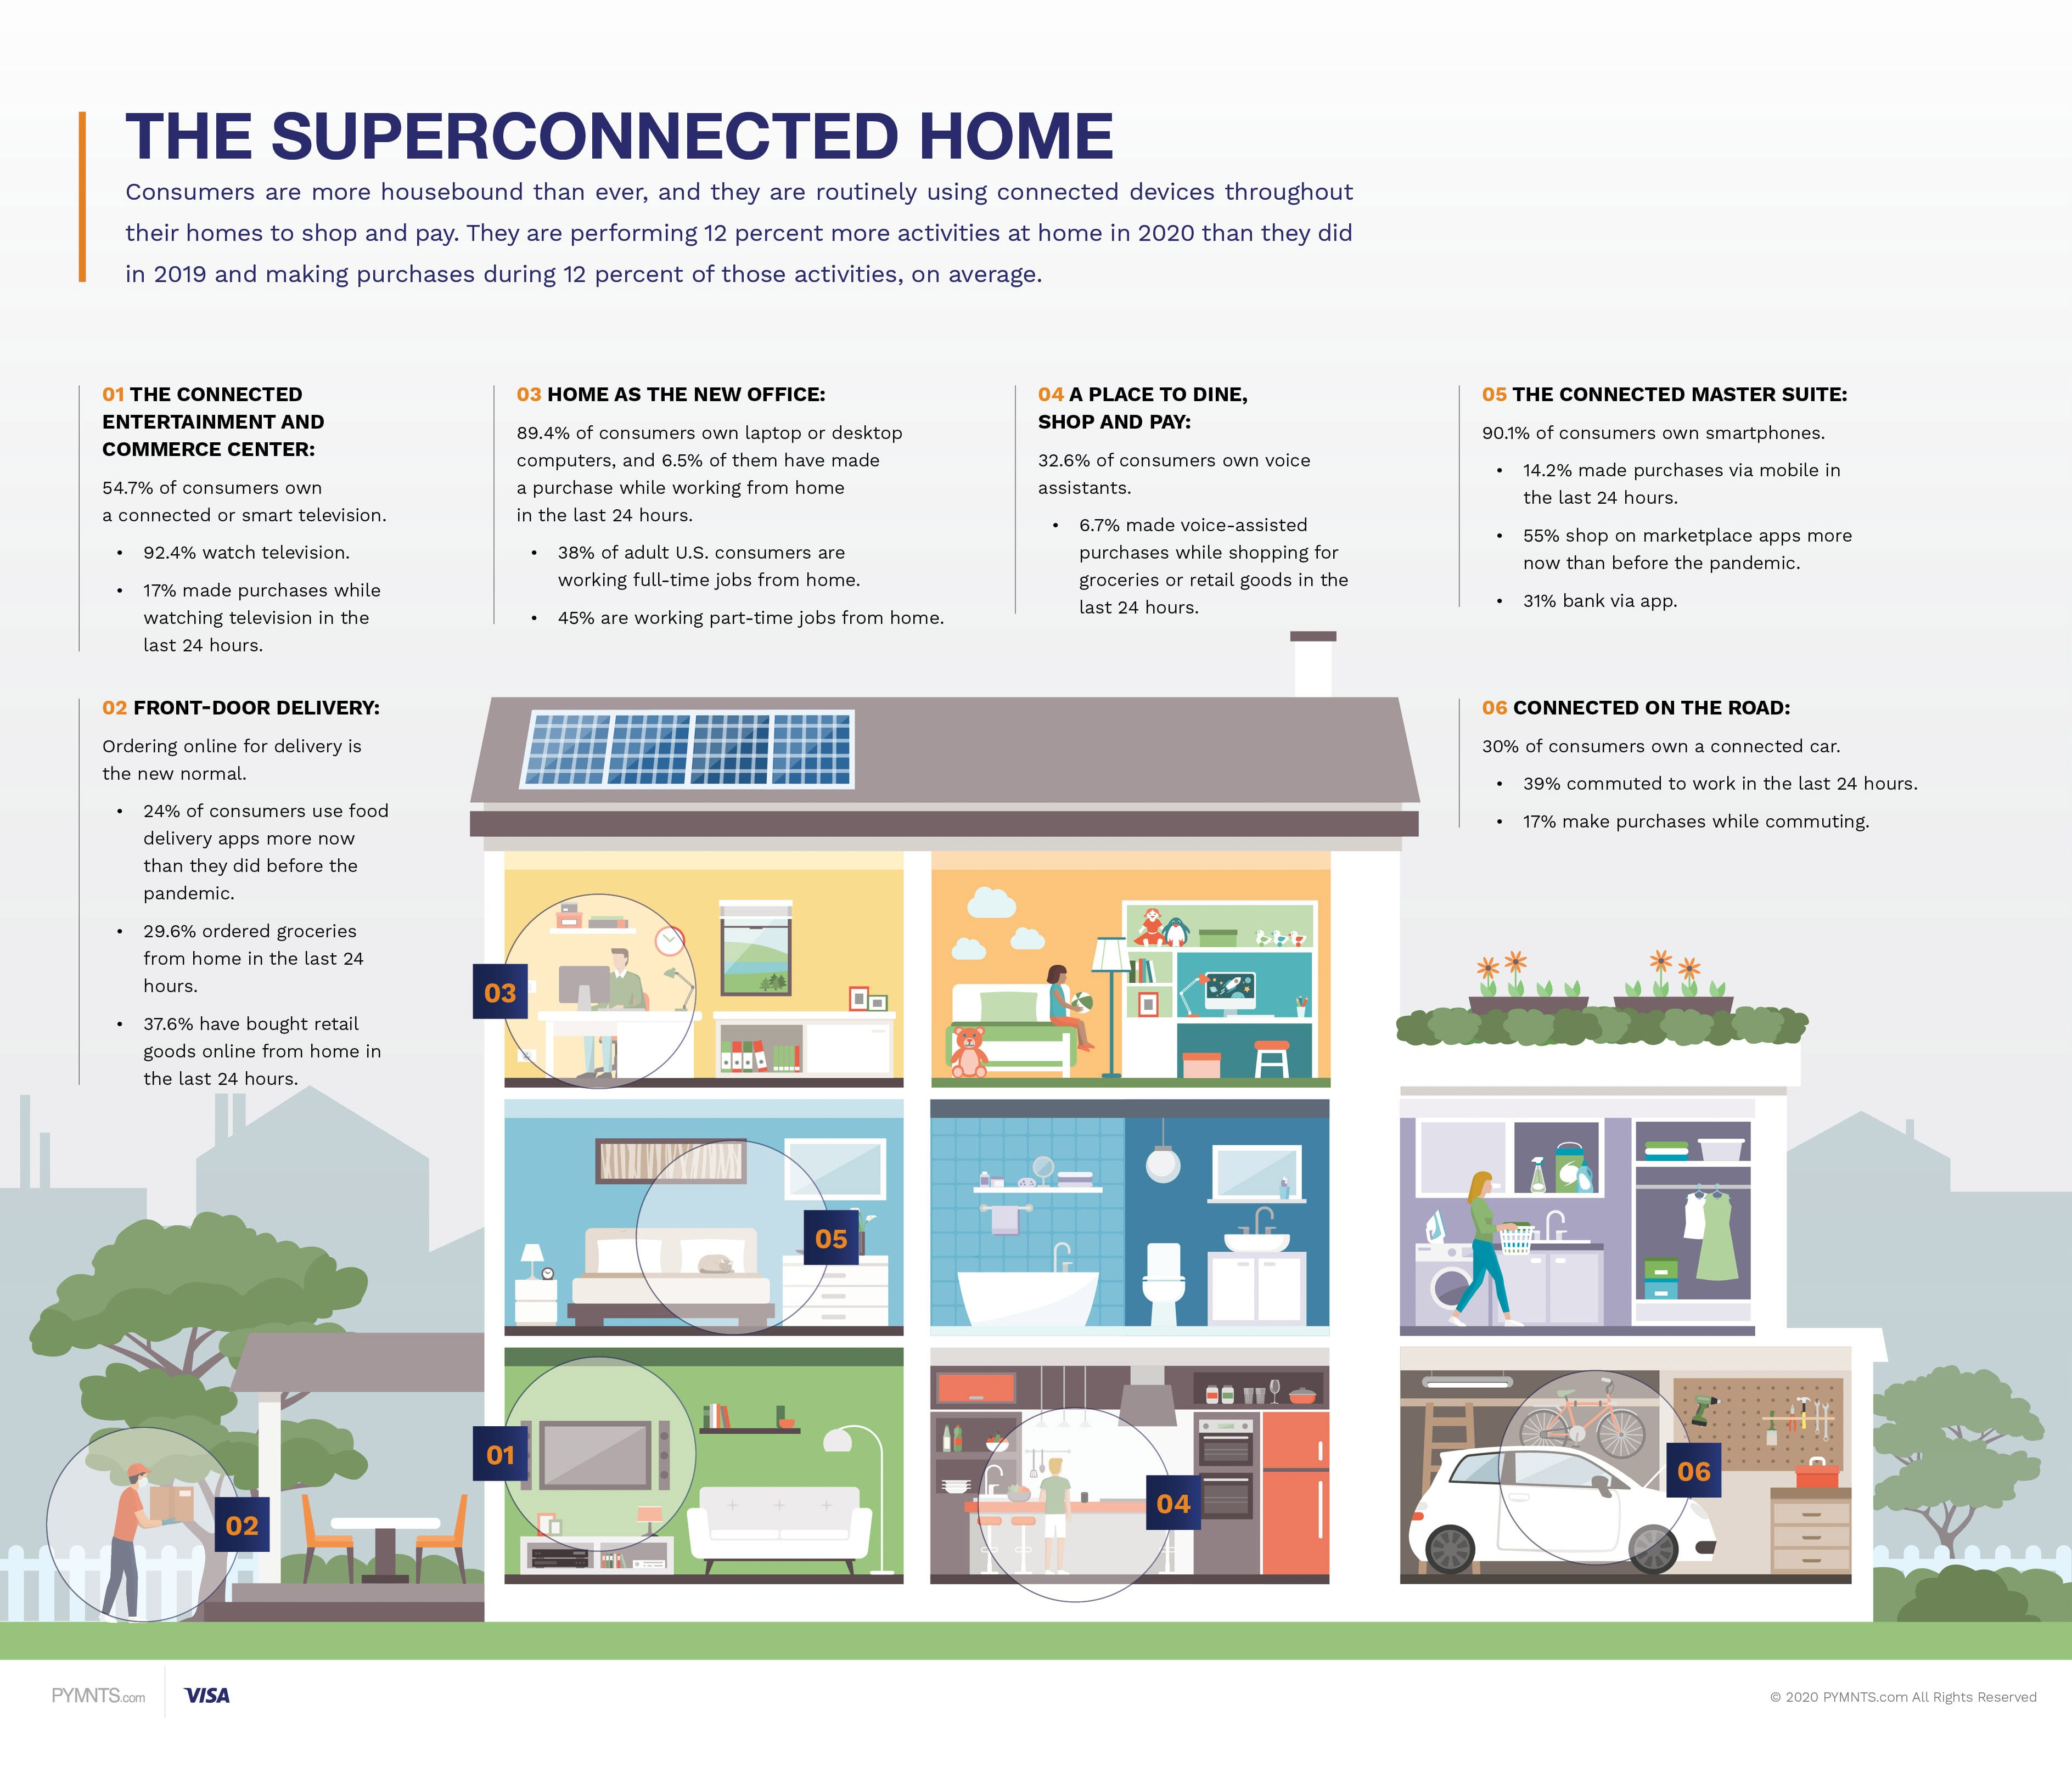 Superconnected home